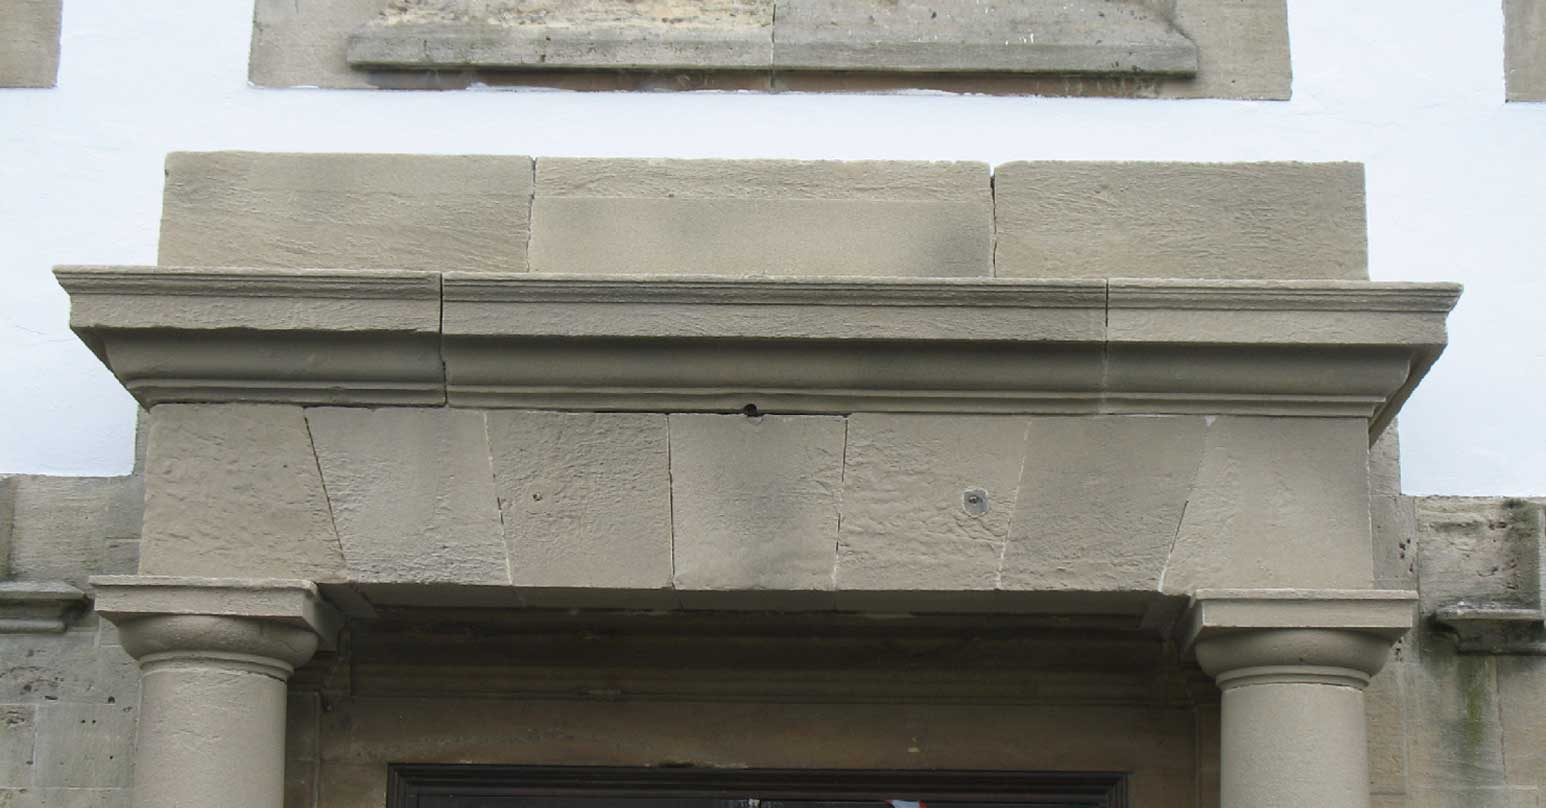 Stone building - After repair